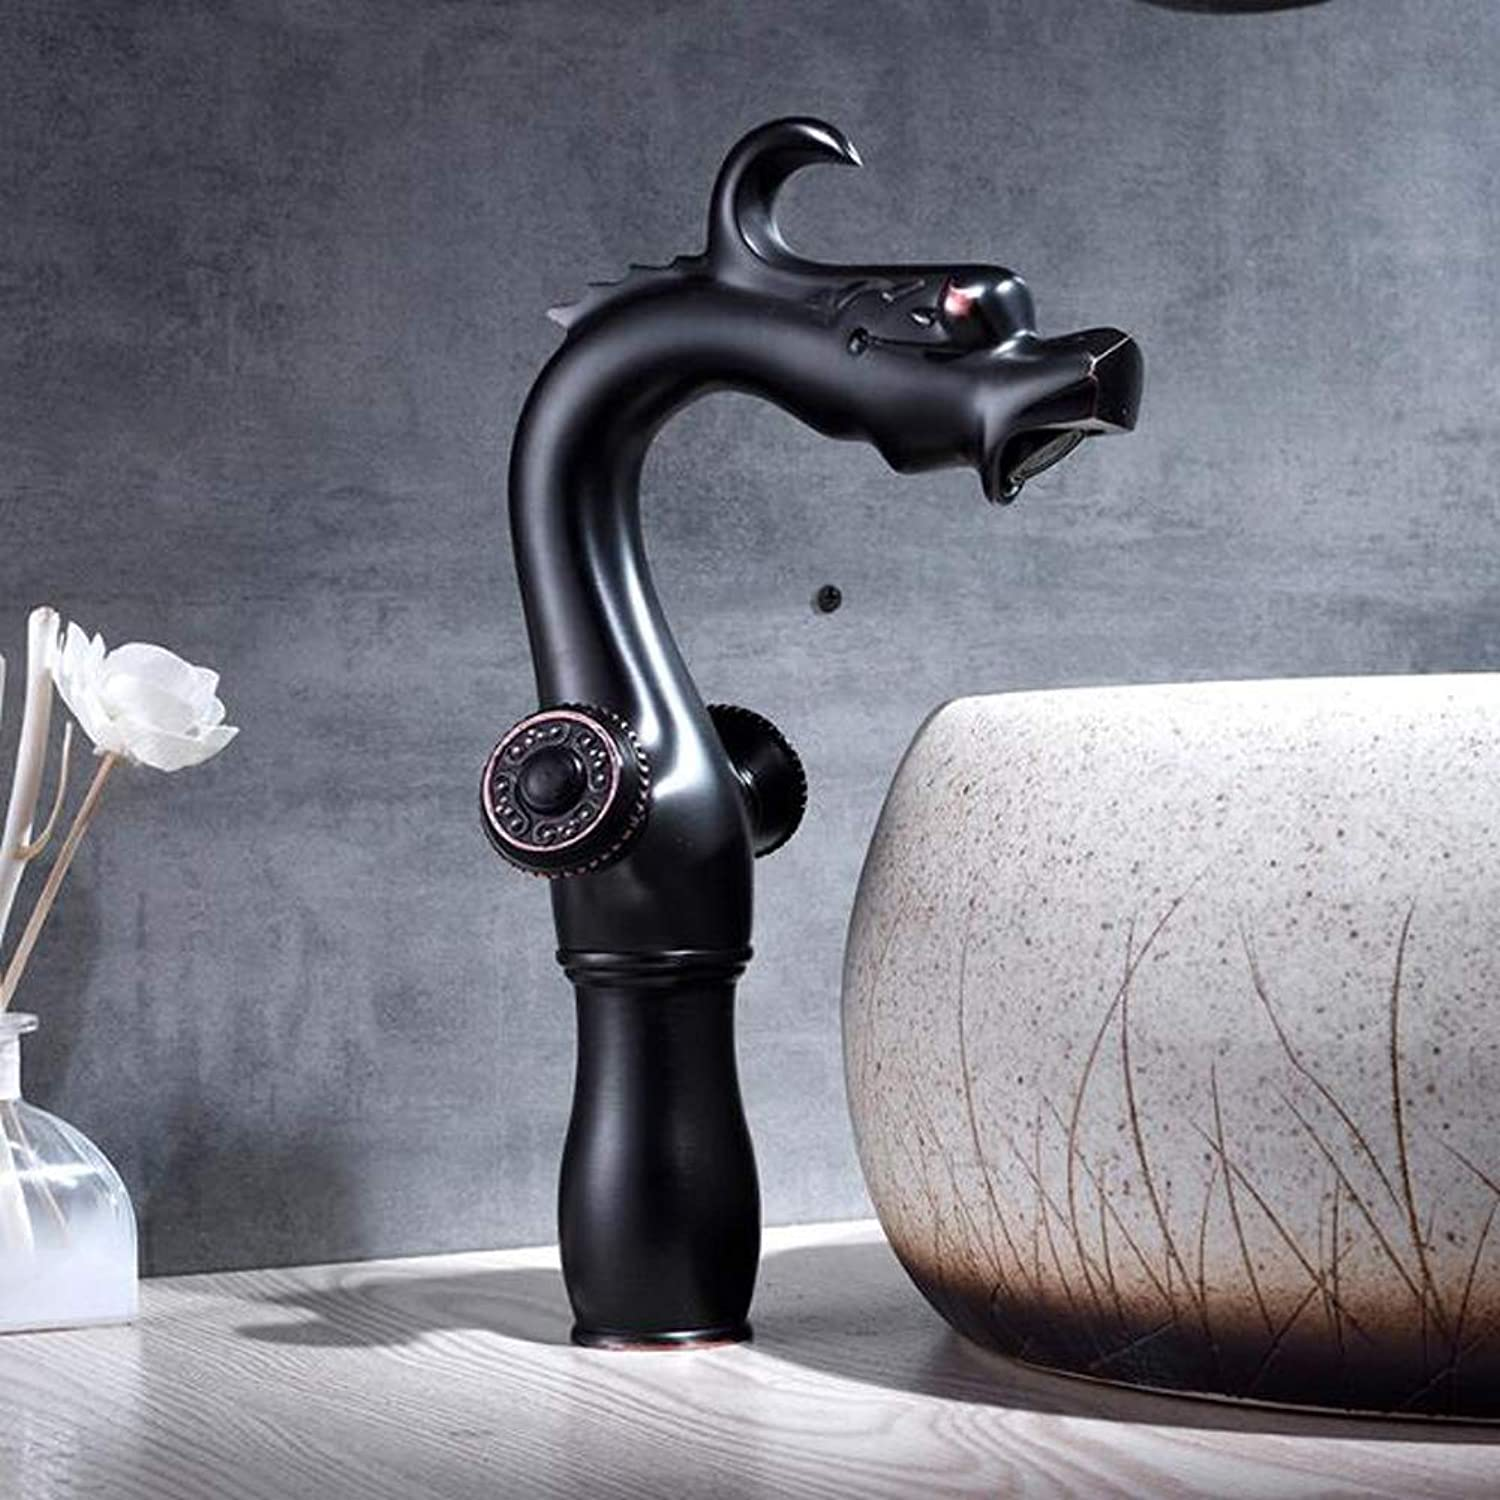 Bathroom Kitchen Sink Faucet,Black Paint Full Copper No Lead Creative Retro Bathroom Counter Basin Faucet Bathroom Sink Hot Cold Mixer Tap,BlackFaucet,Short,High